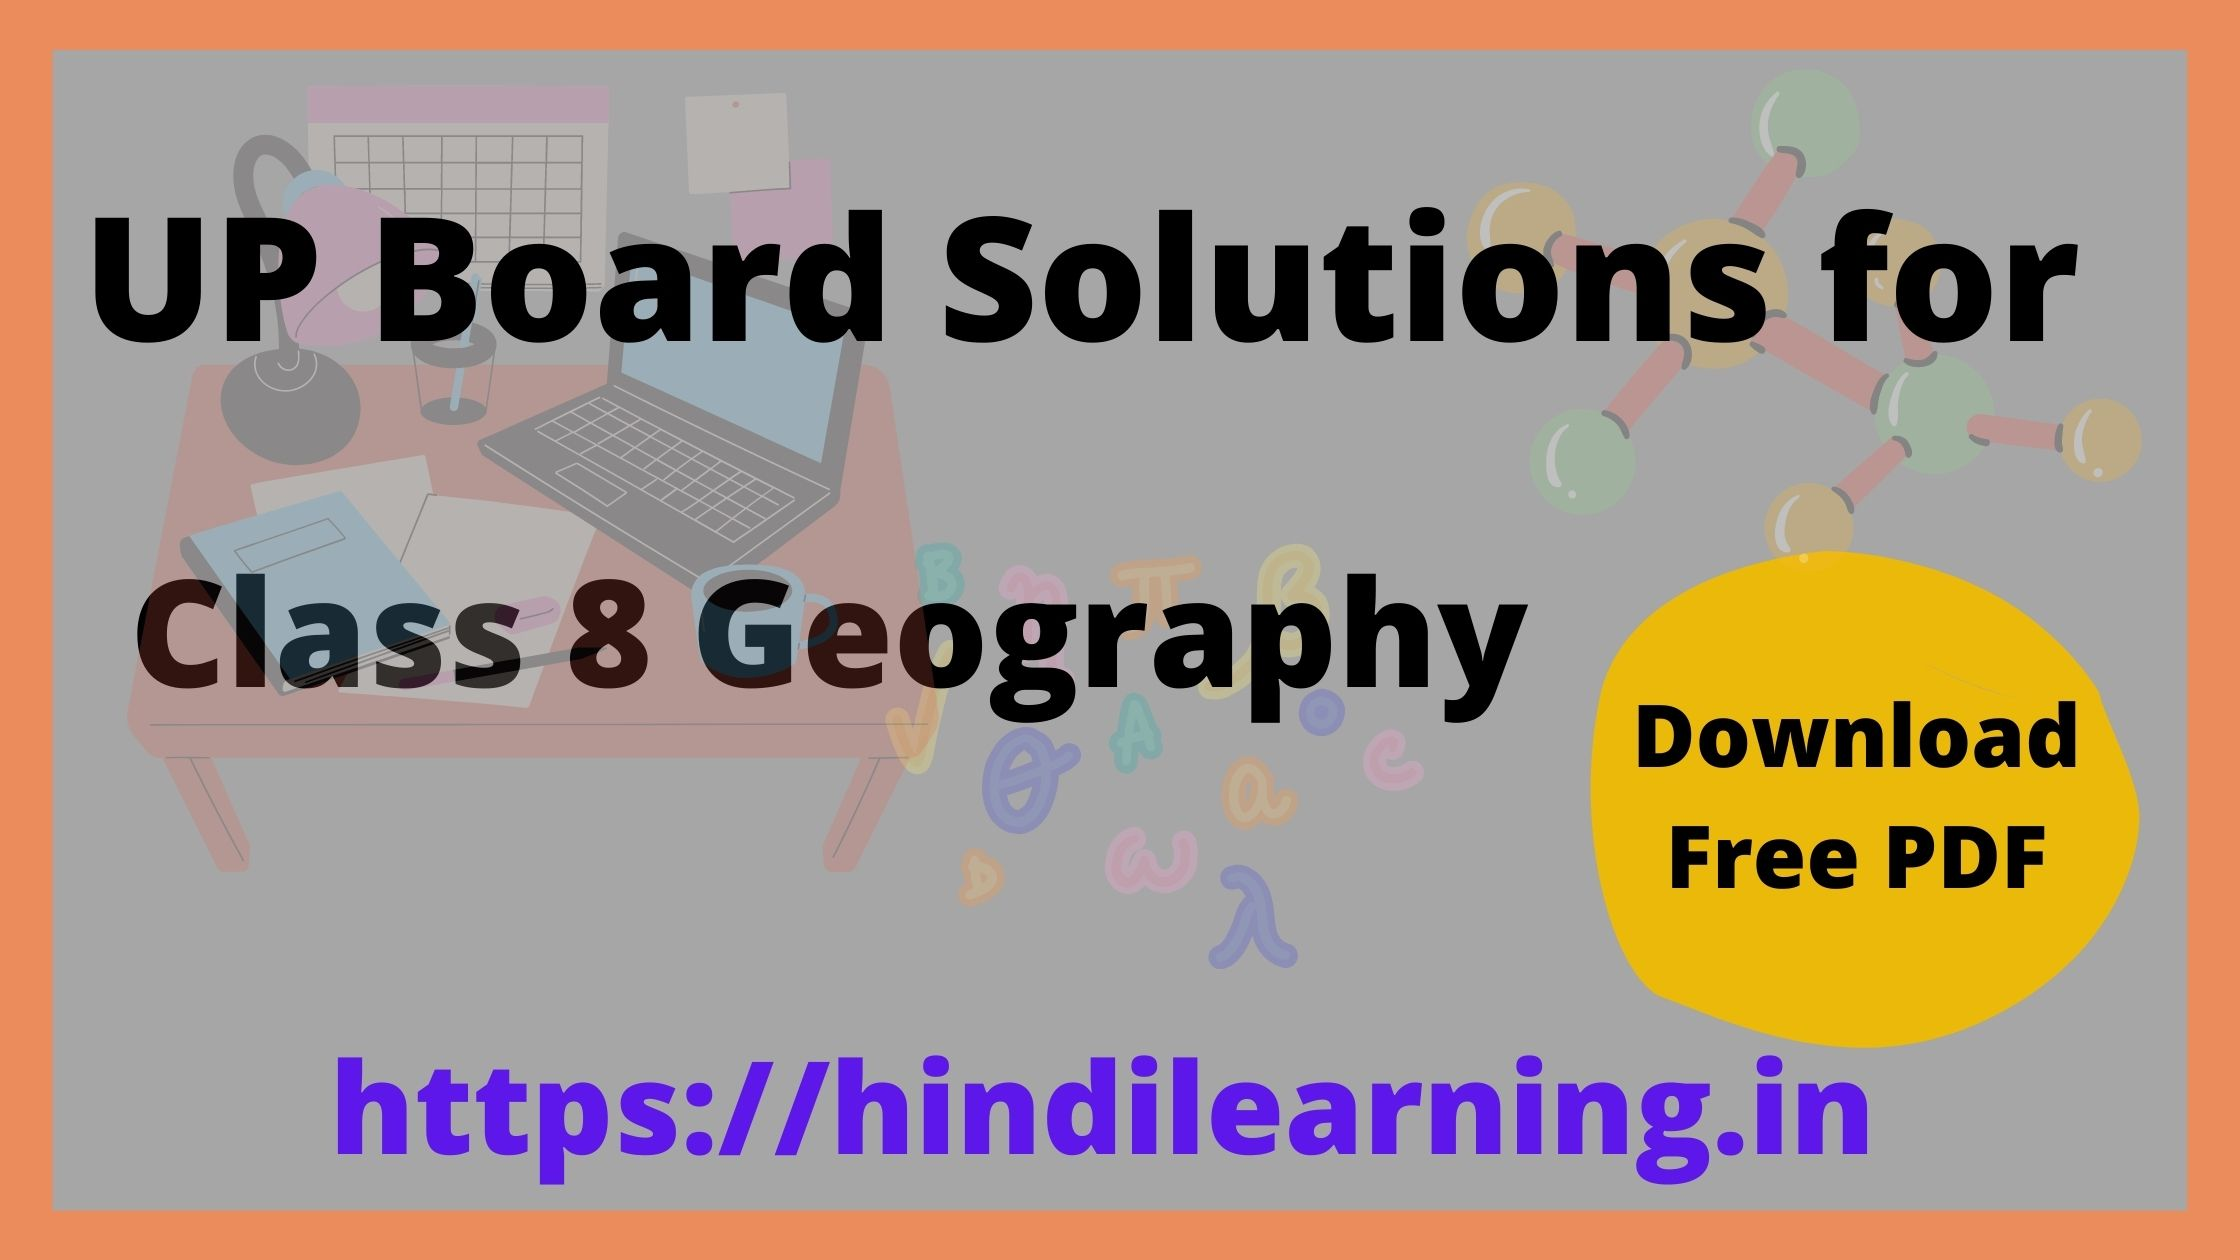 UP Board Solutions for Class 8 Geography भूगोल